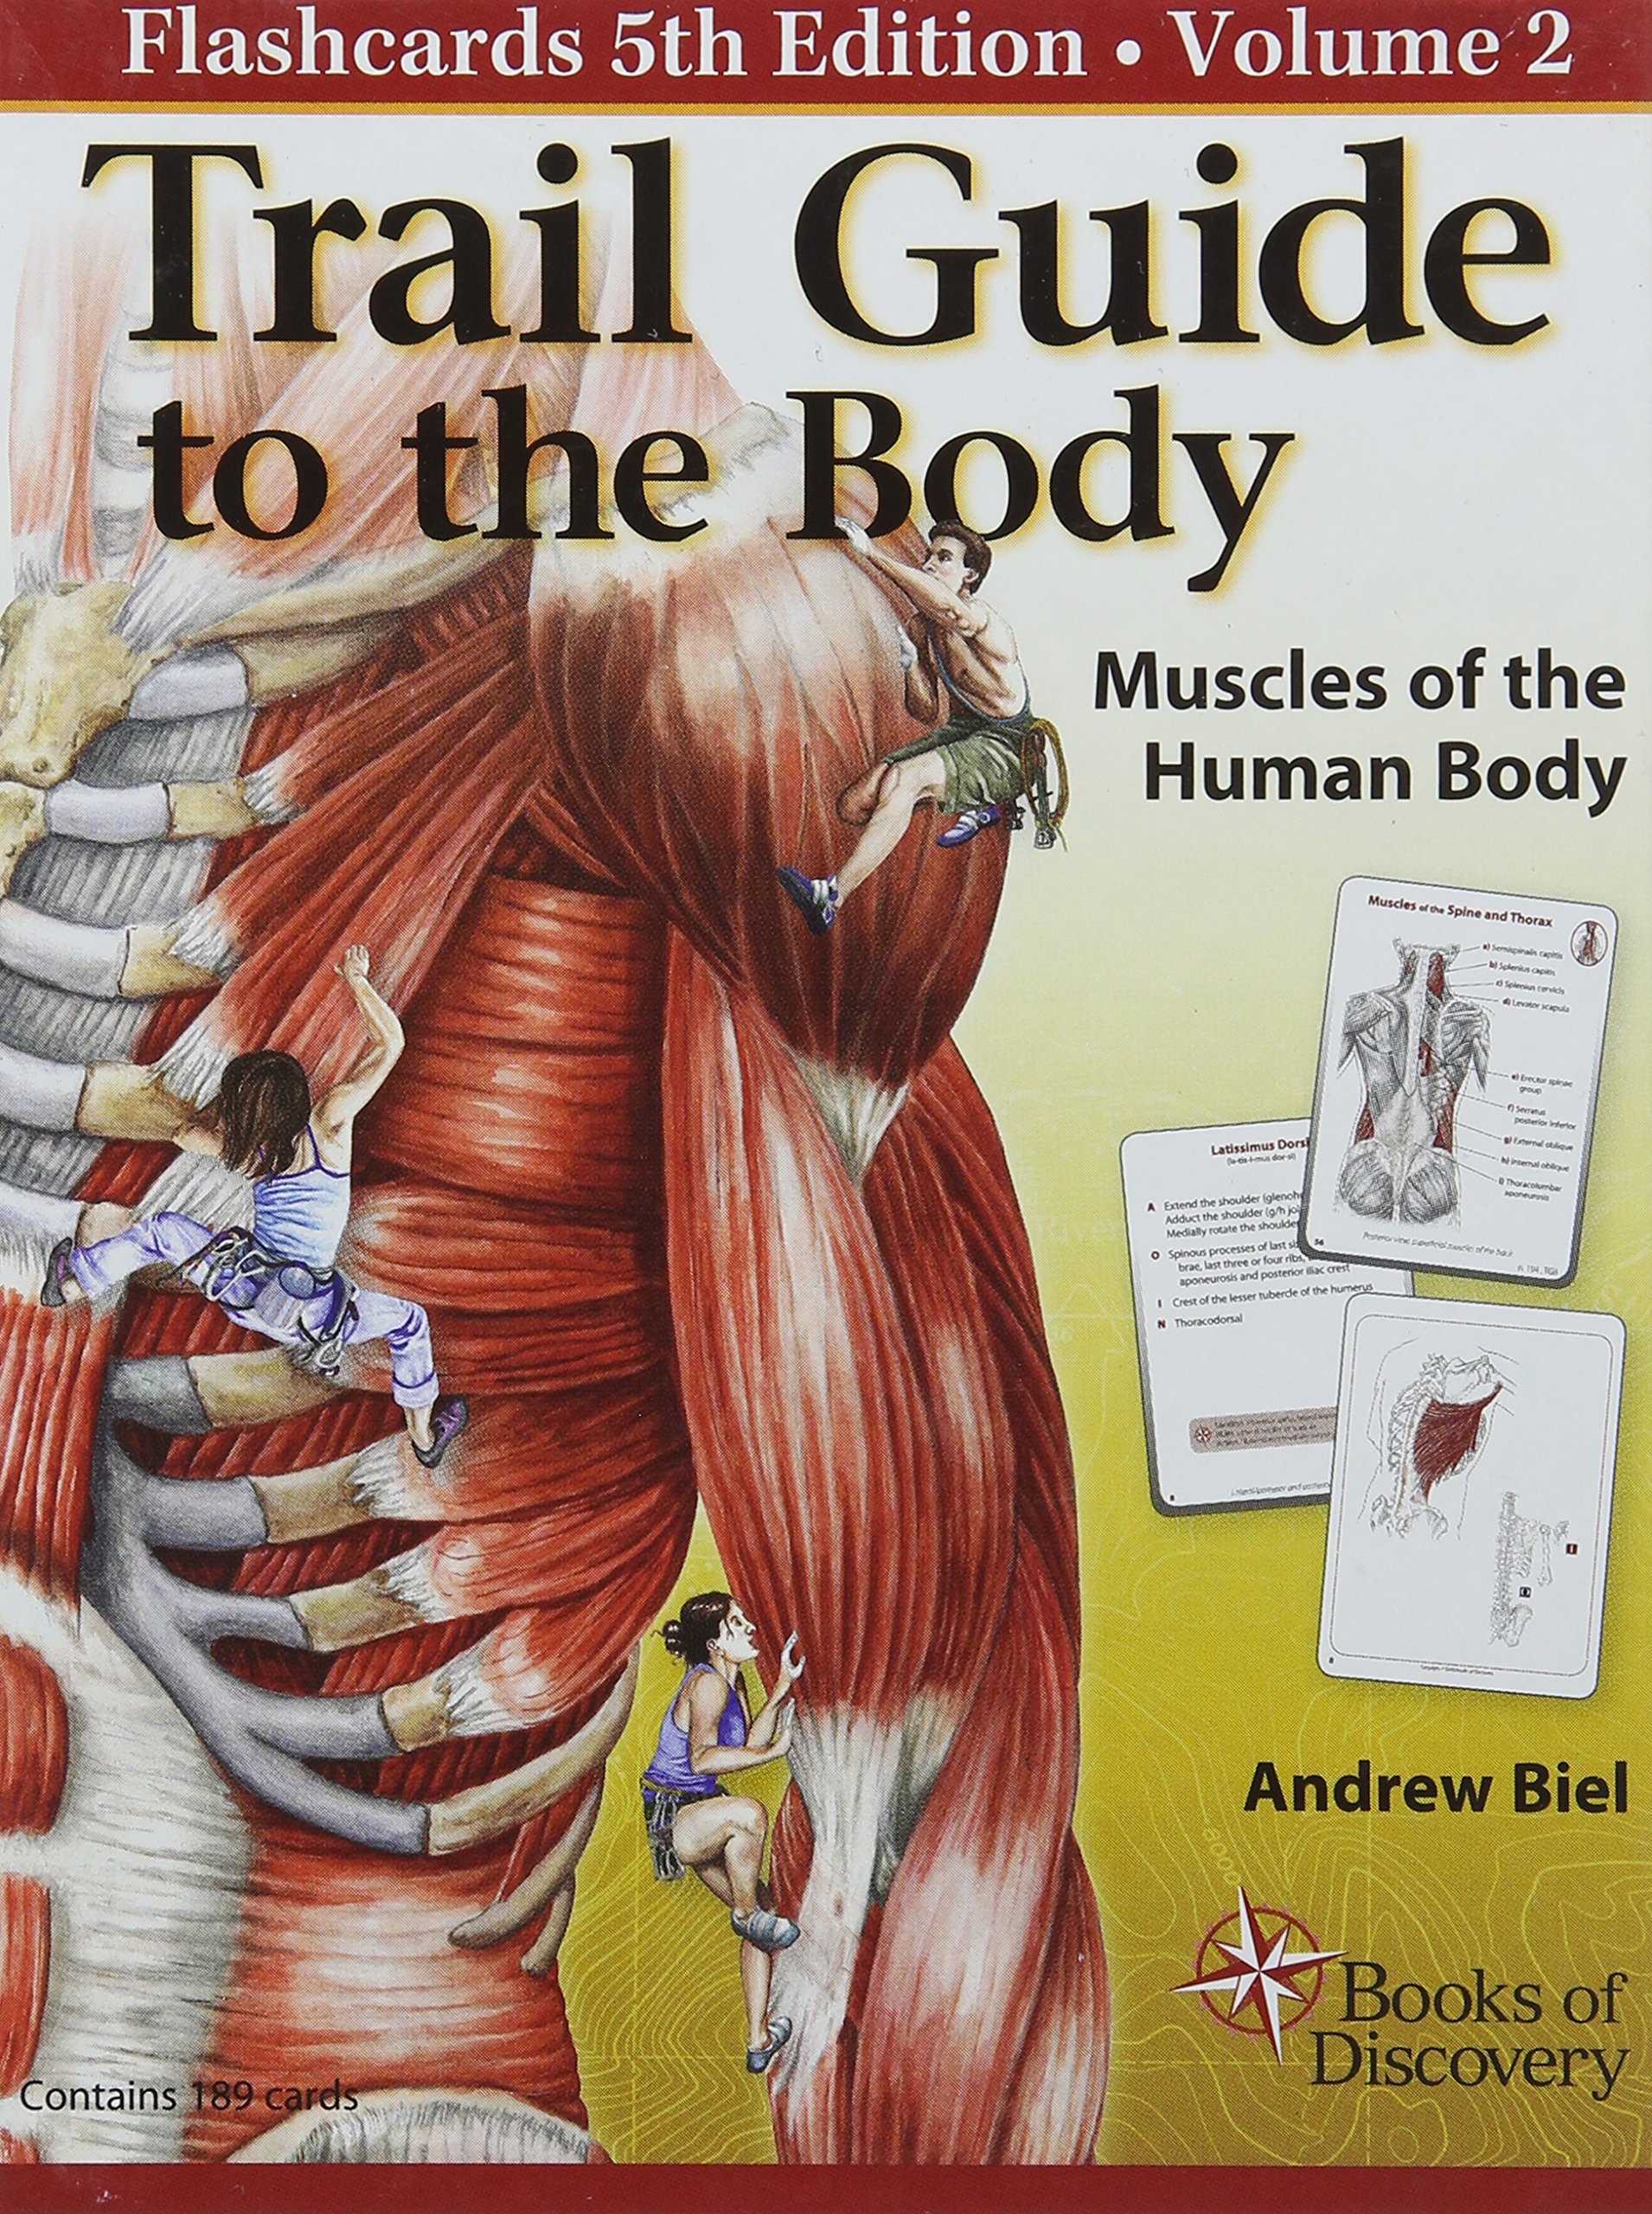 Trail Guide to the Body Flashcards Volume 2: Muscles of the Body ...